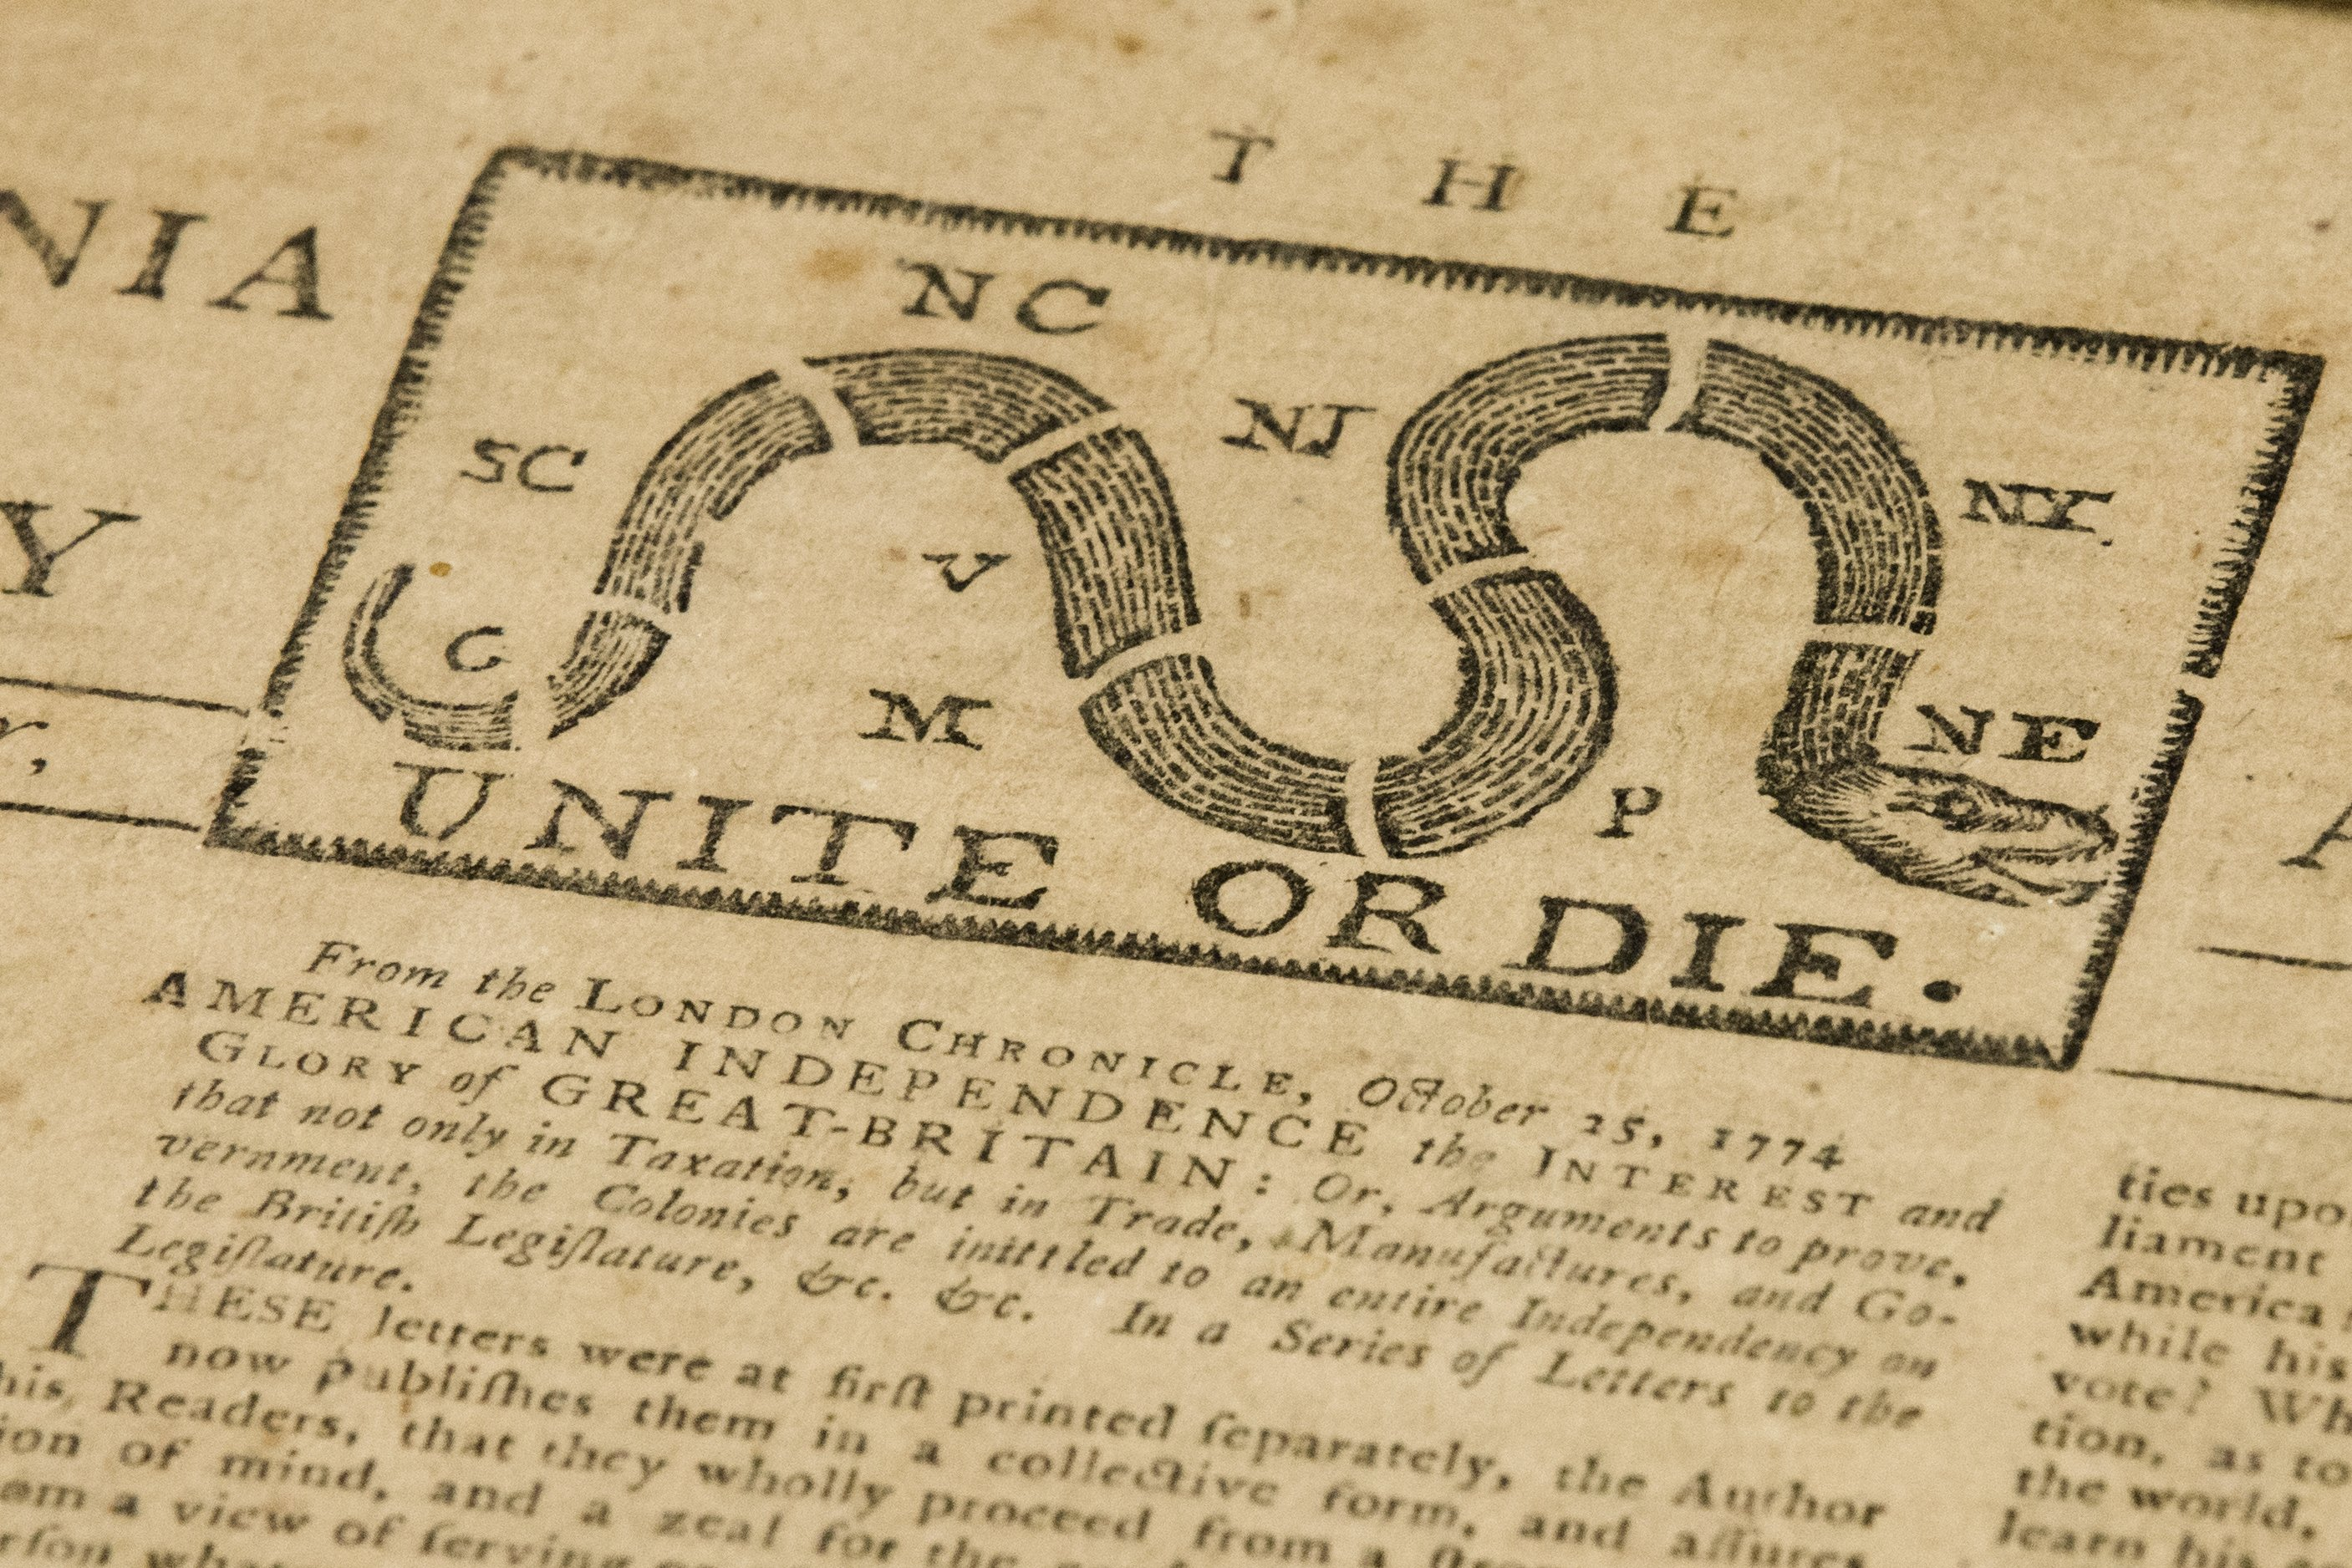 Goodwill workers in NJ find original 1774 'rebel' newspaper